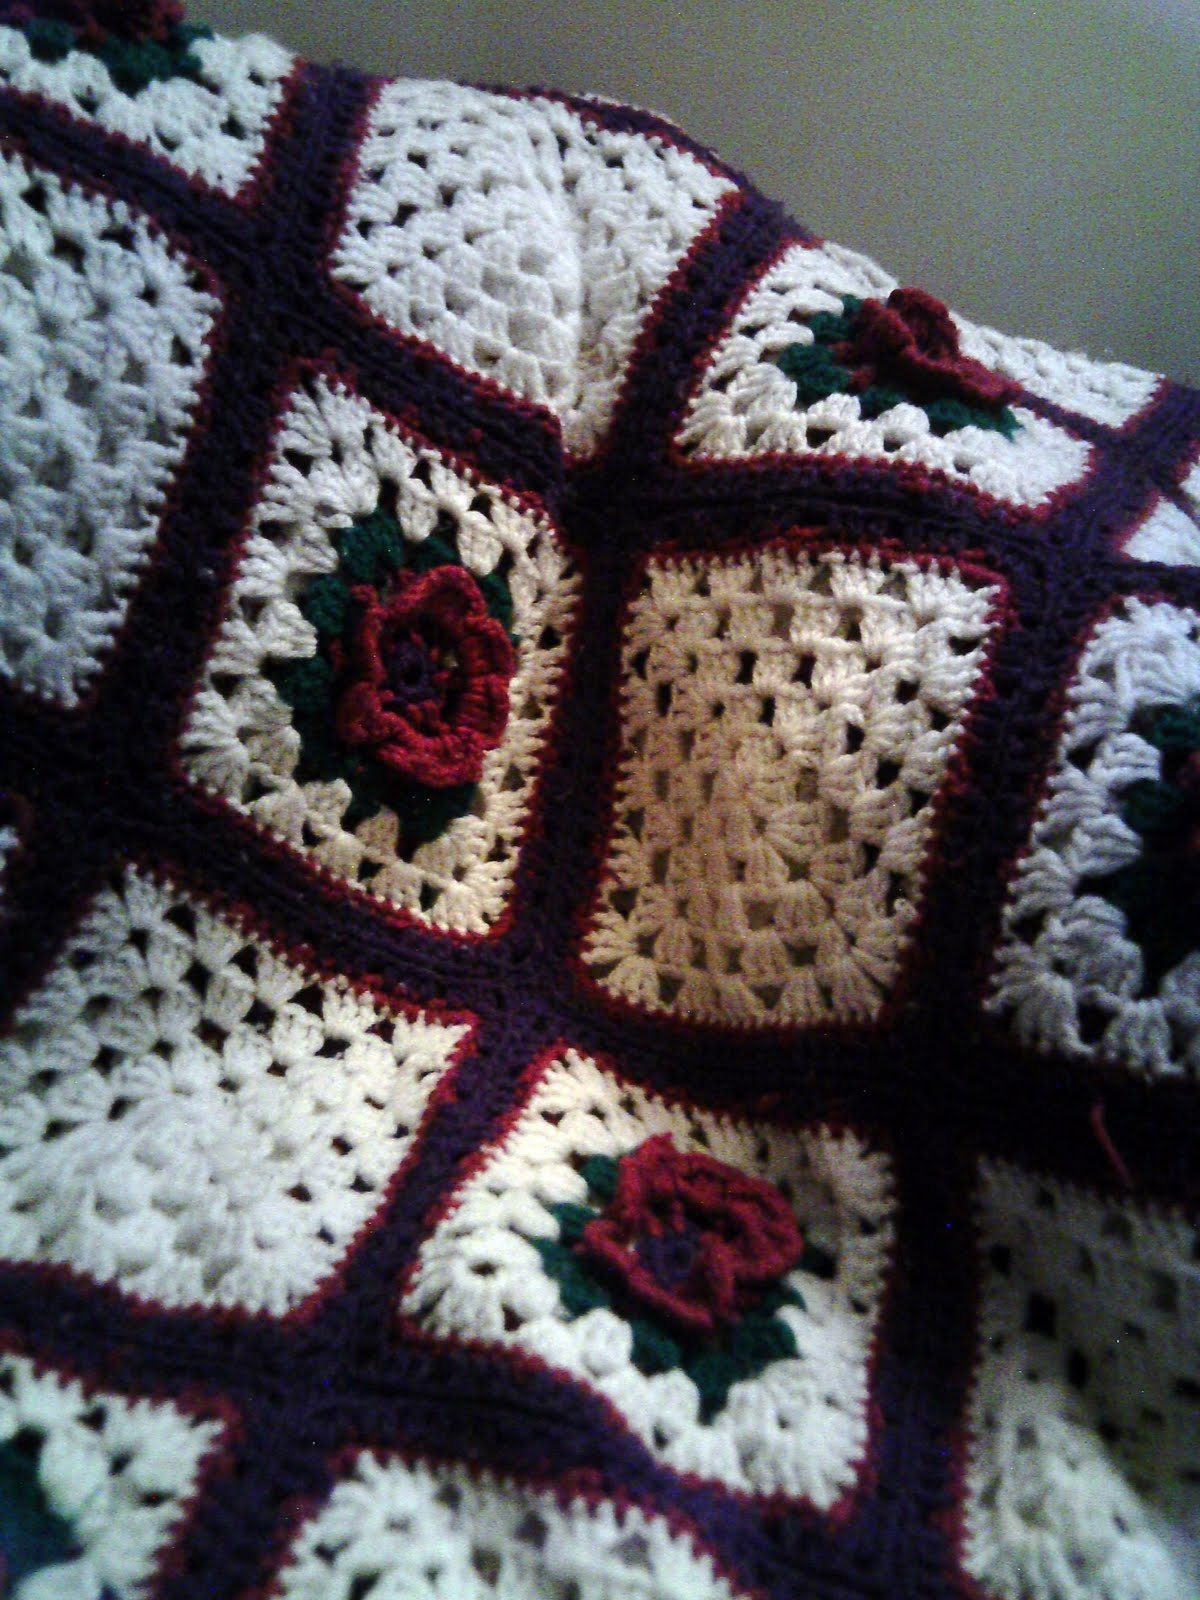 Crochet Patterns Squares : Crochet Afghan Squares - Free Crocheted Afghan Square Patterns